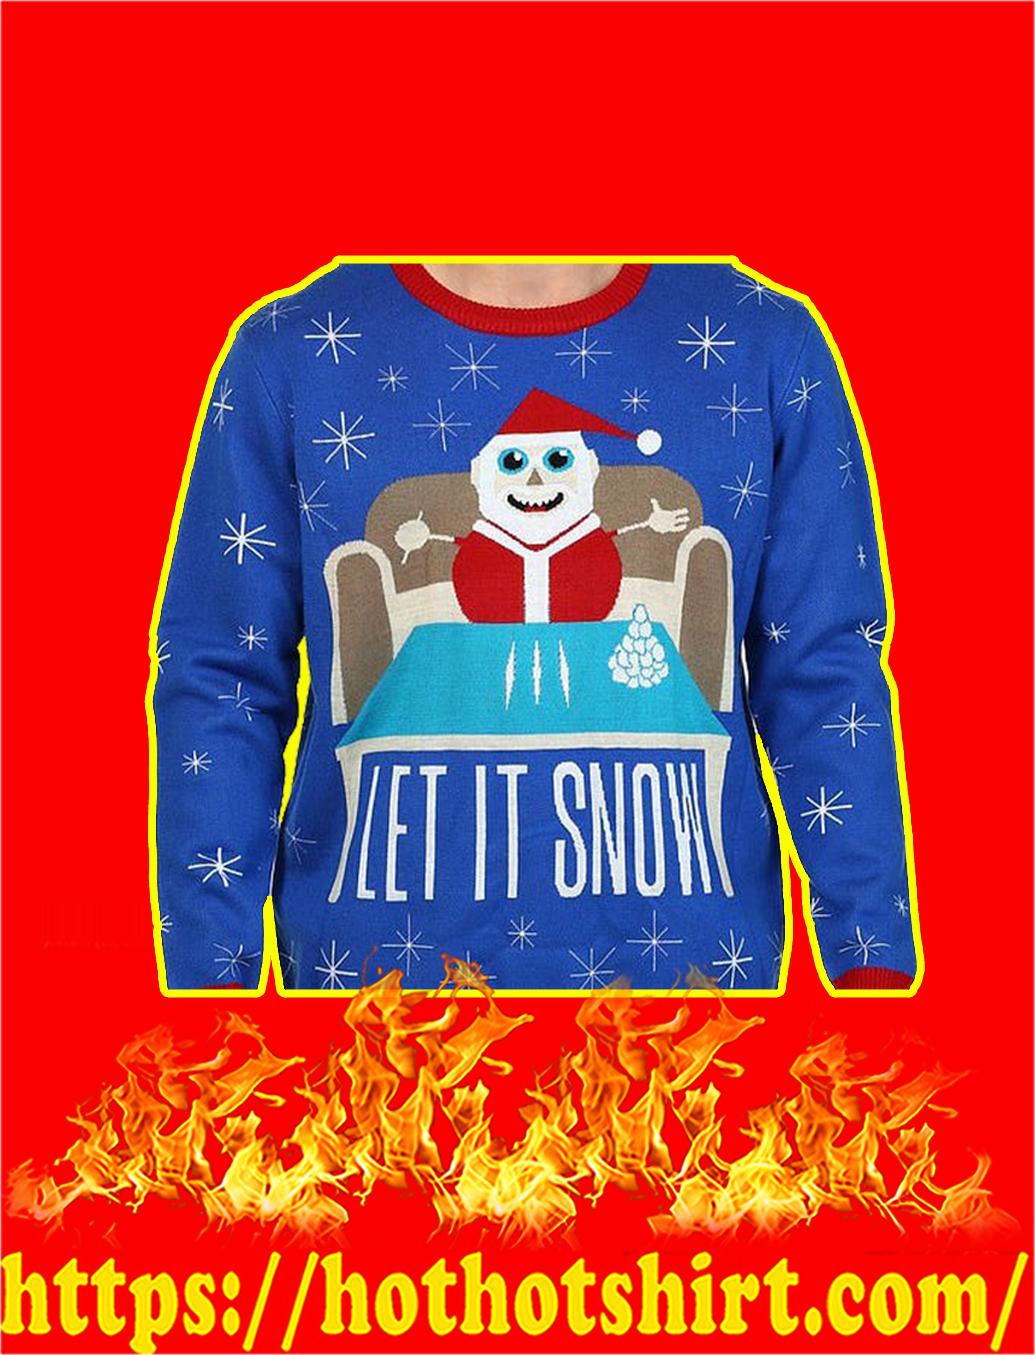 Let It Snow Santa Claus Doing Cocaine Sweater- S